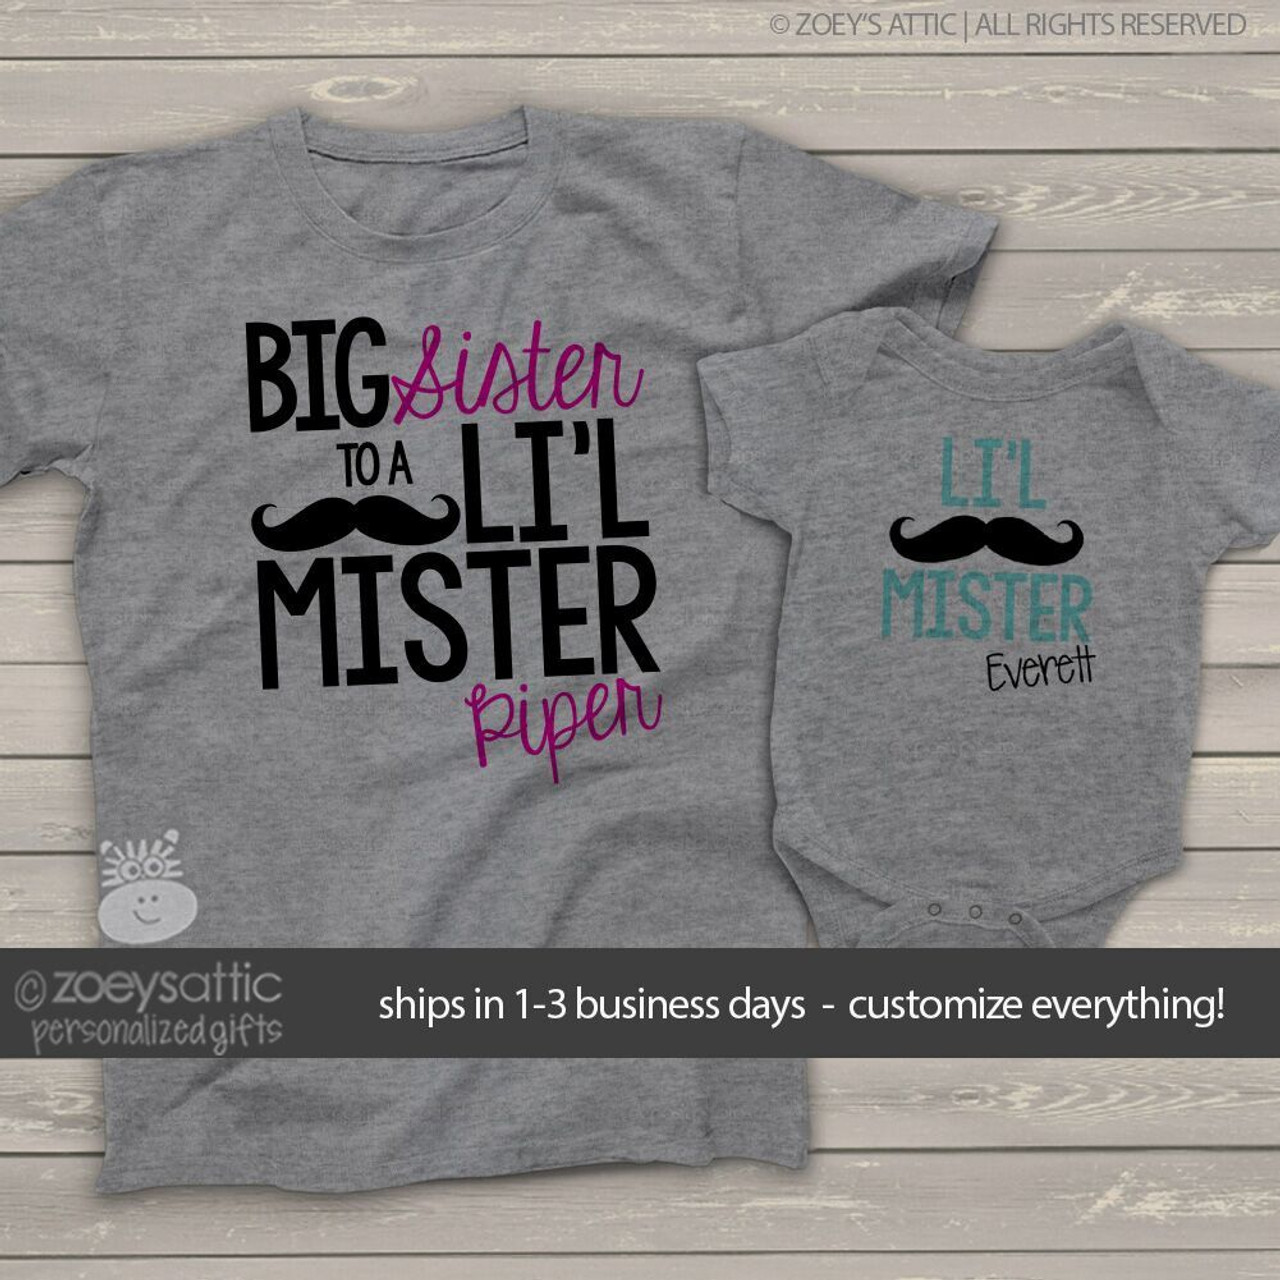 Big Sister t shirt lil mister t shirt t shirt set girl boy baby t shirt